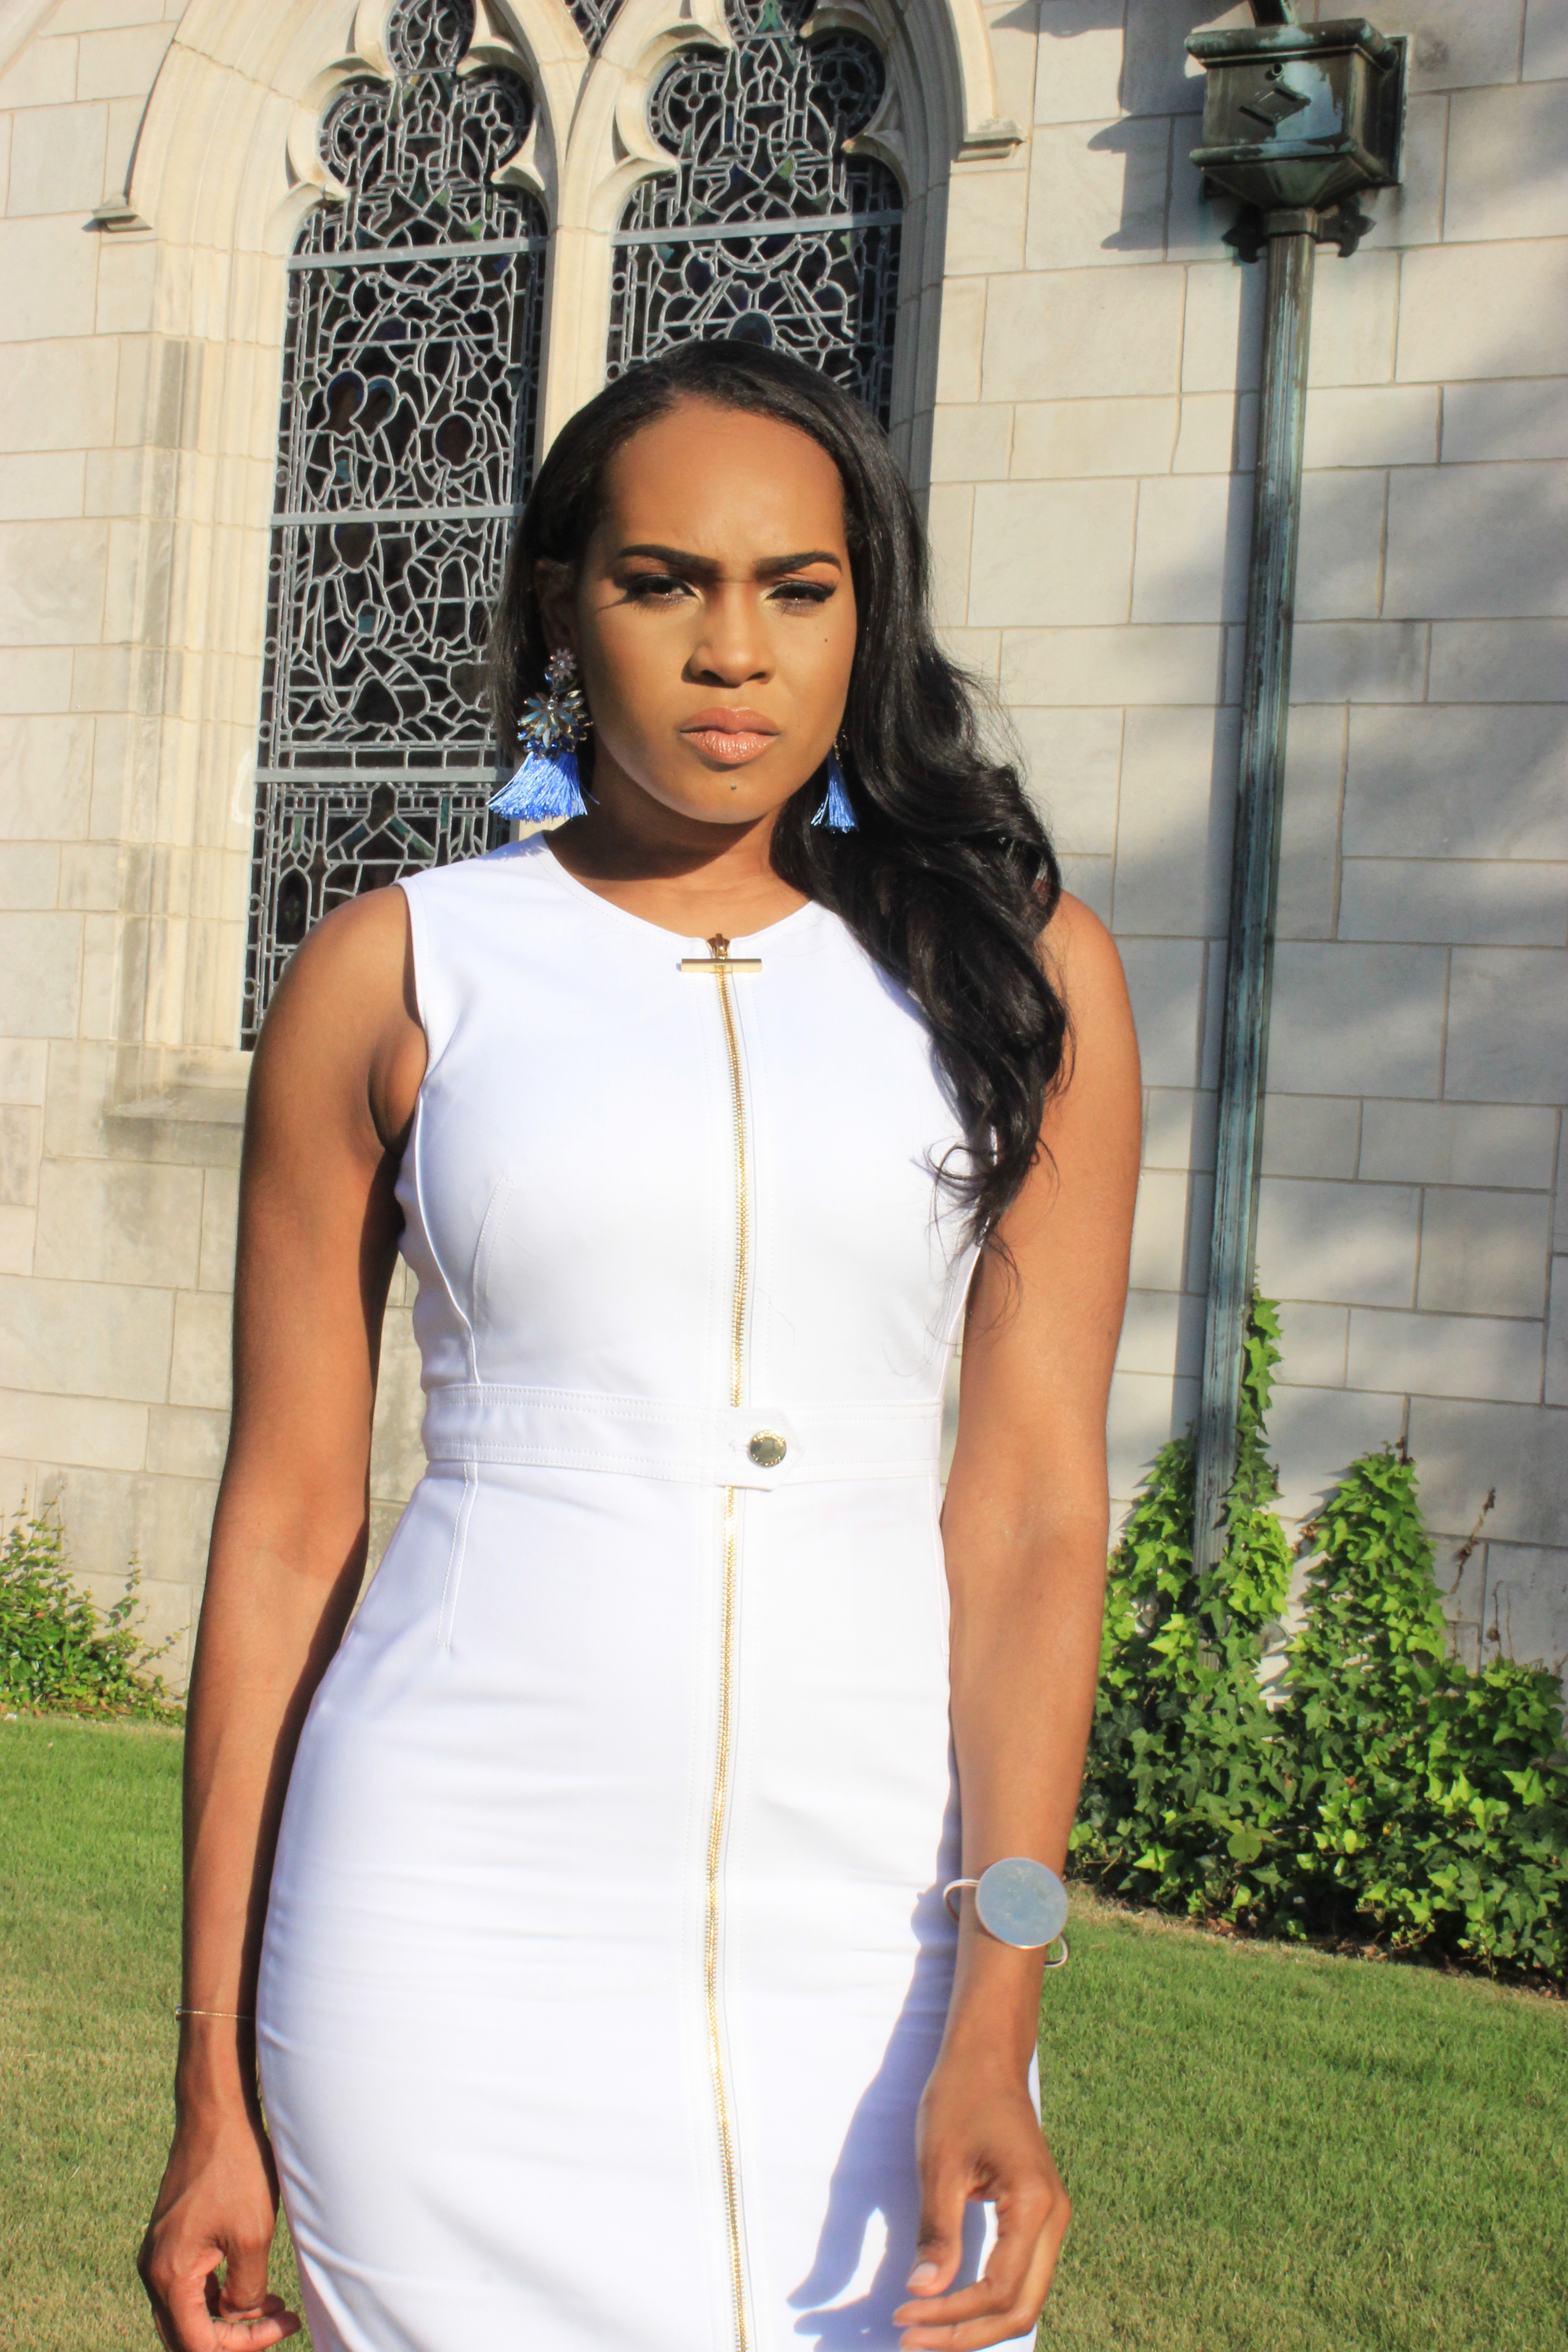 Style-Files-White-Sheath-Calvin-Klein-Dress-with-front-exposed-gold-zipper-sky-blue-fringe-earrings-truffle-collection-barely-there-heel-sandal-rose-gold-how-to-wear-white-to-work-birmingham-top-blogger-oohlalablog-